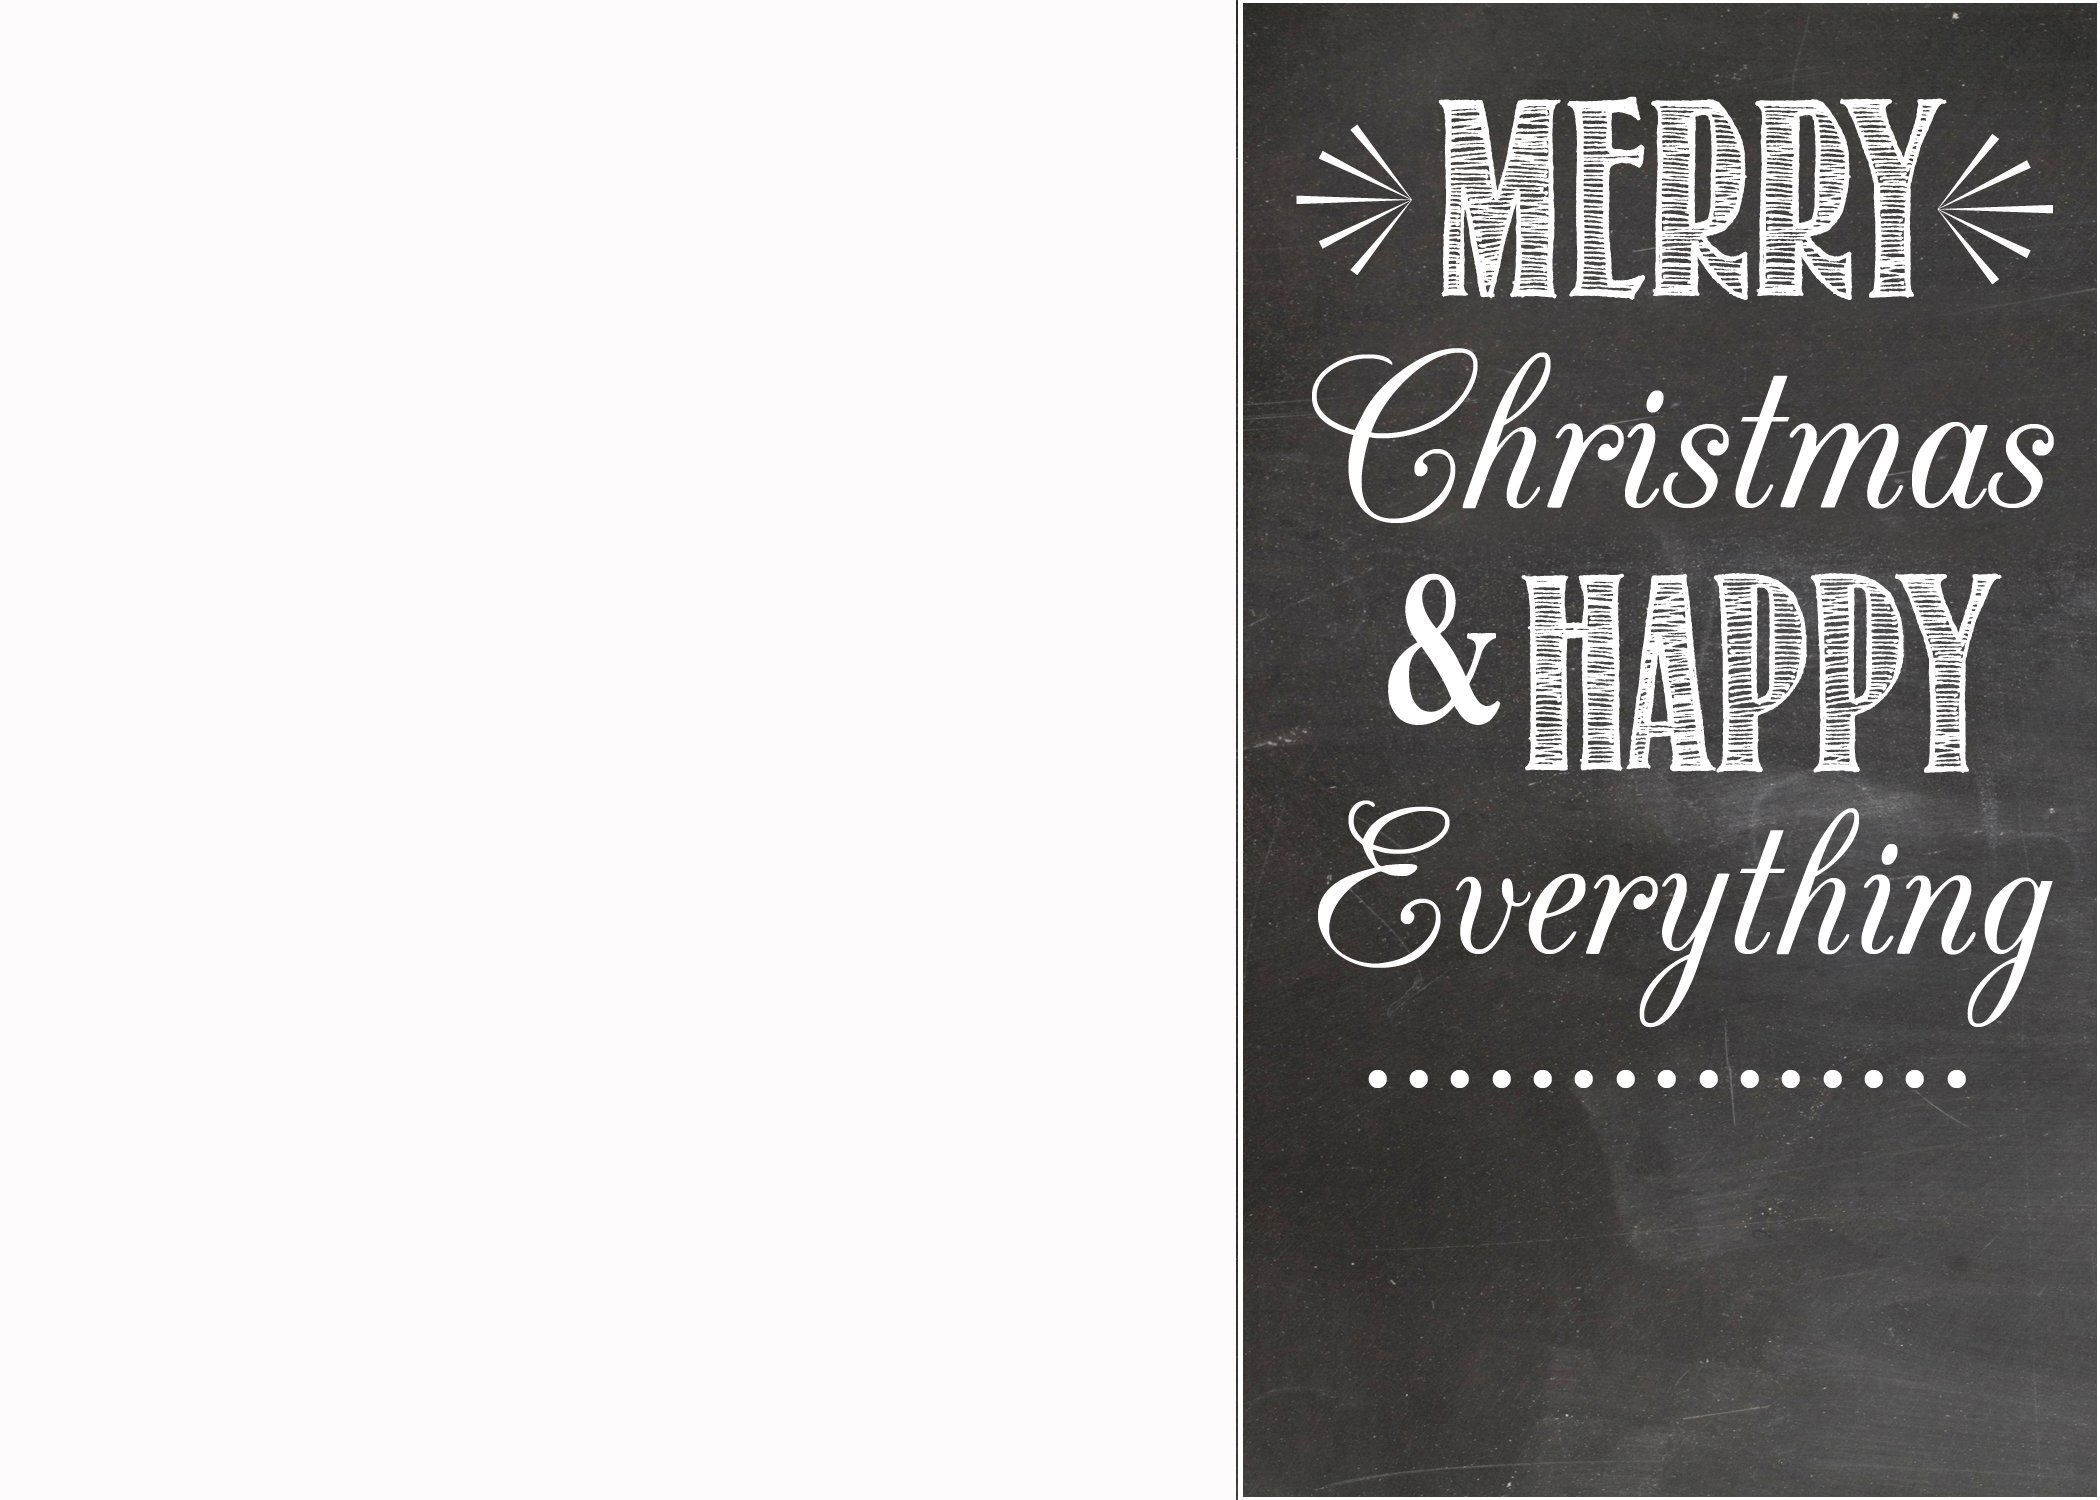 Christmas Card Template | Simplykierste.com  Free Xmas Card Template